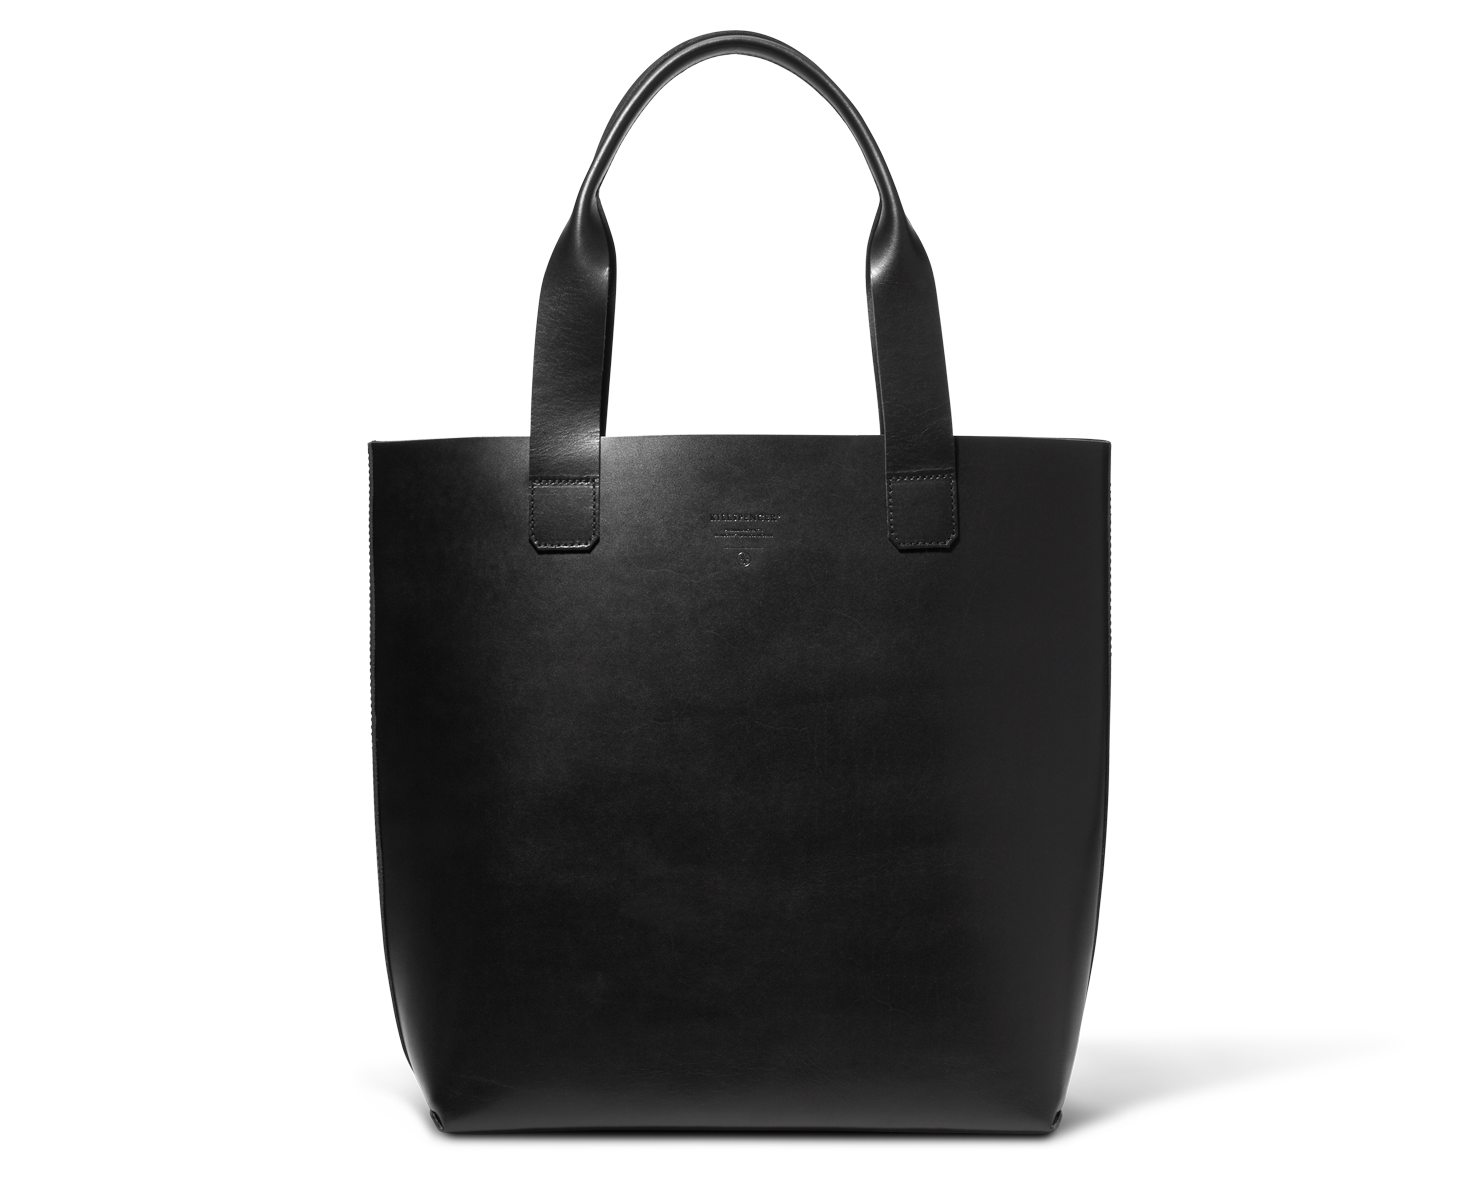 WORK TOTE | KILLSPENCER® - Black Bullhide Leather